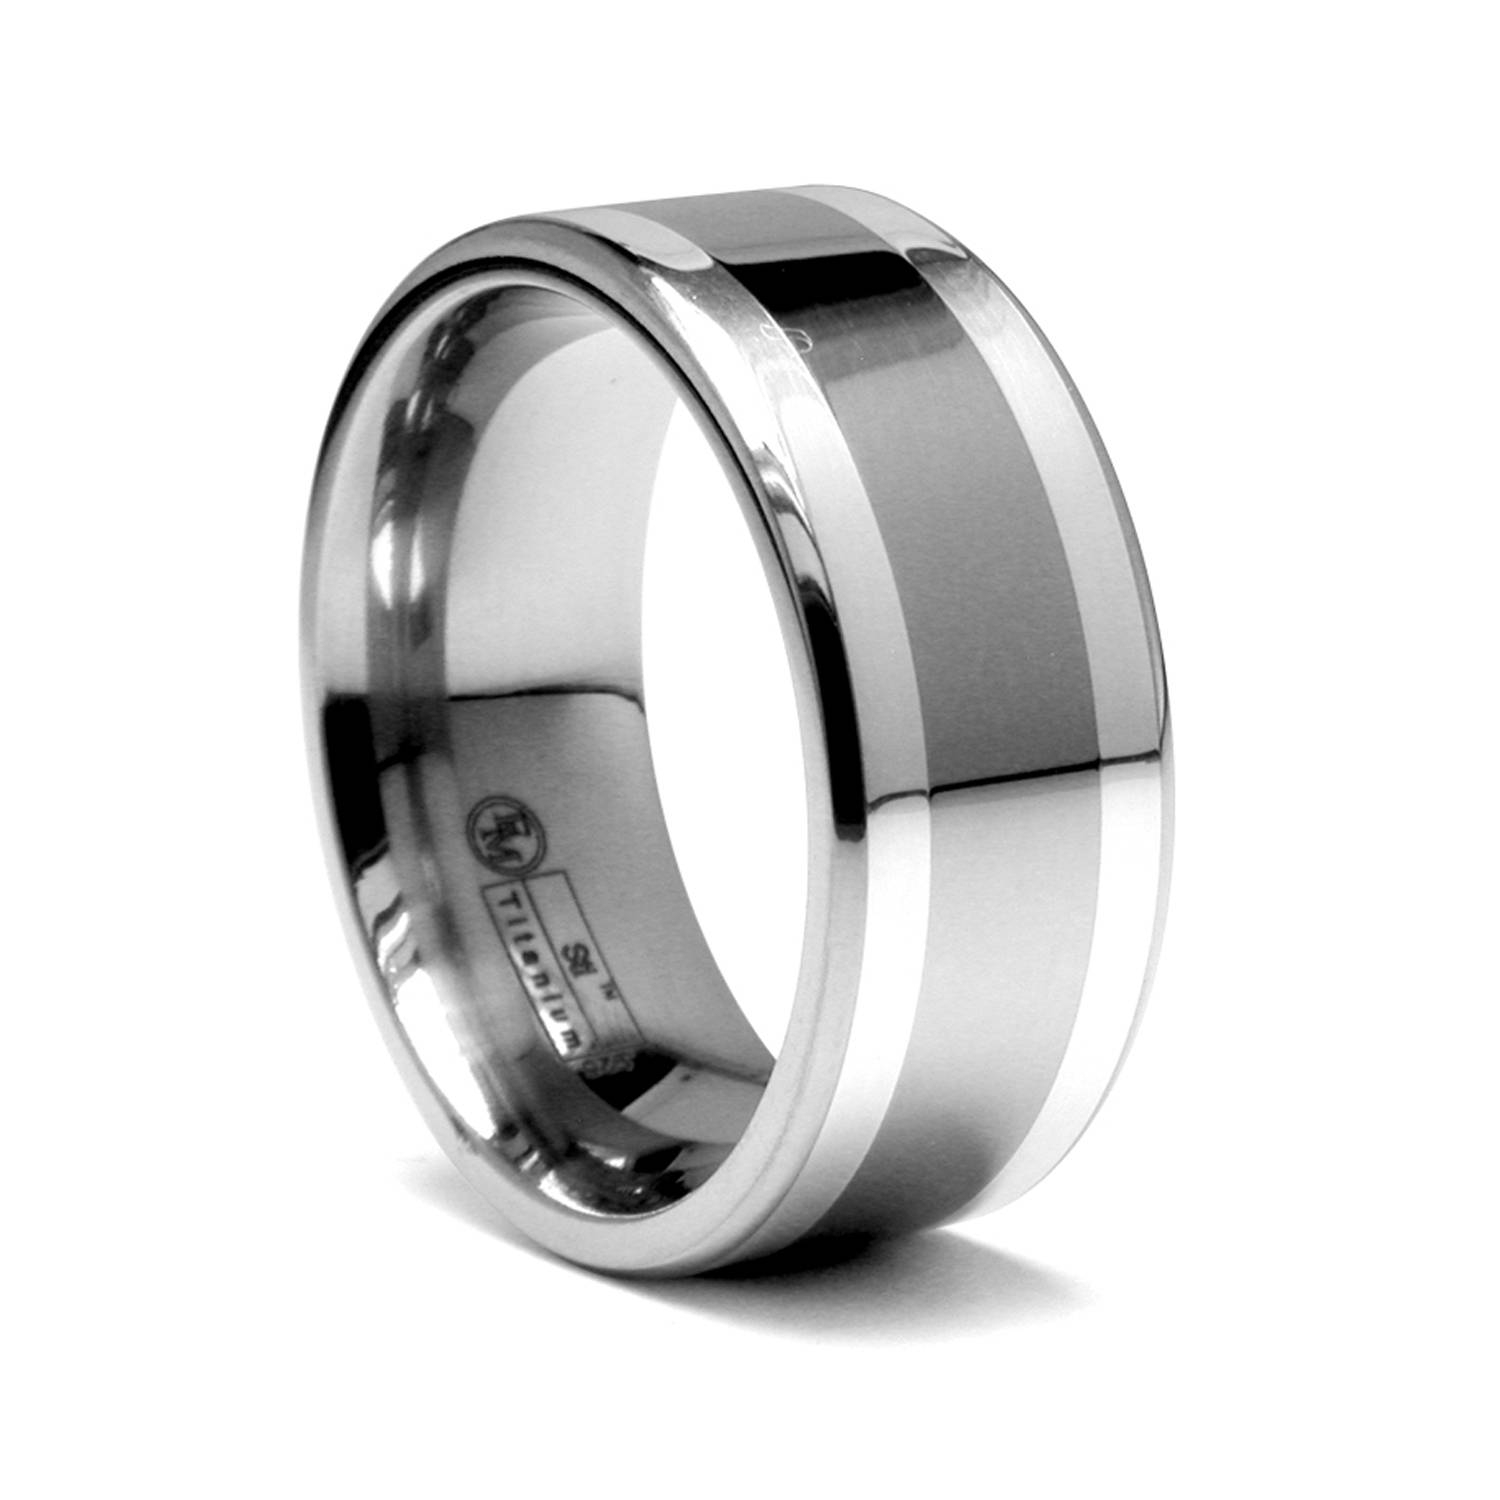 Titanium Men's Ring With Silver Inlays | Alpha Rings Intended For Black Titanium Wedding Bands For Men (View 12 of 15)